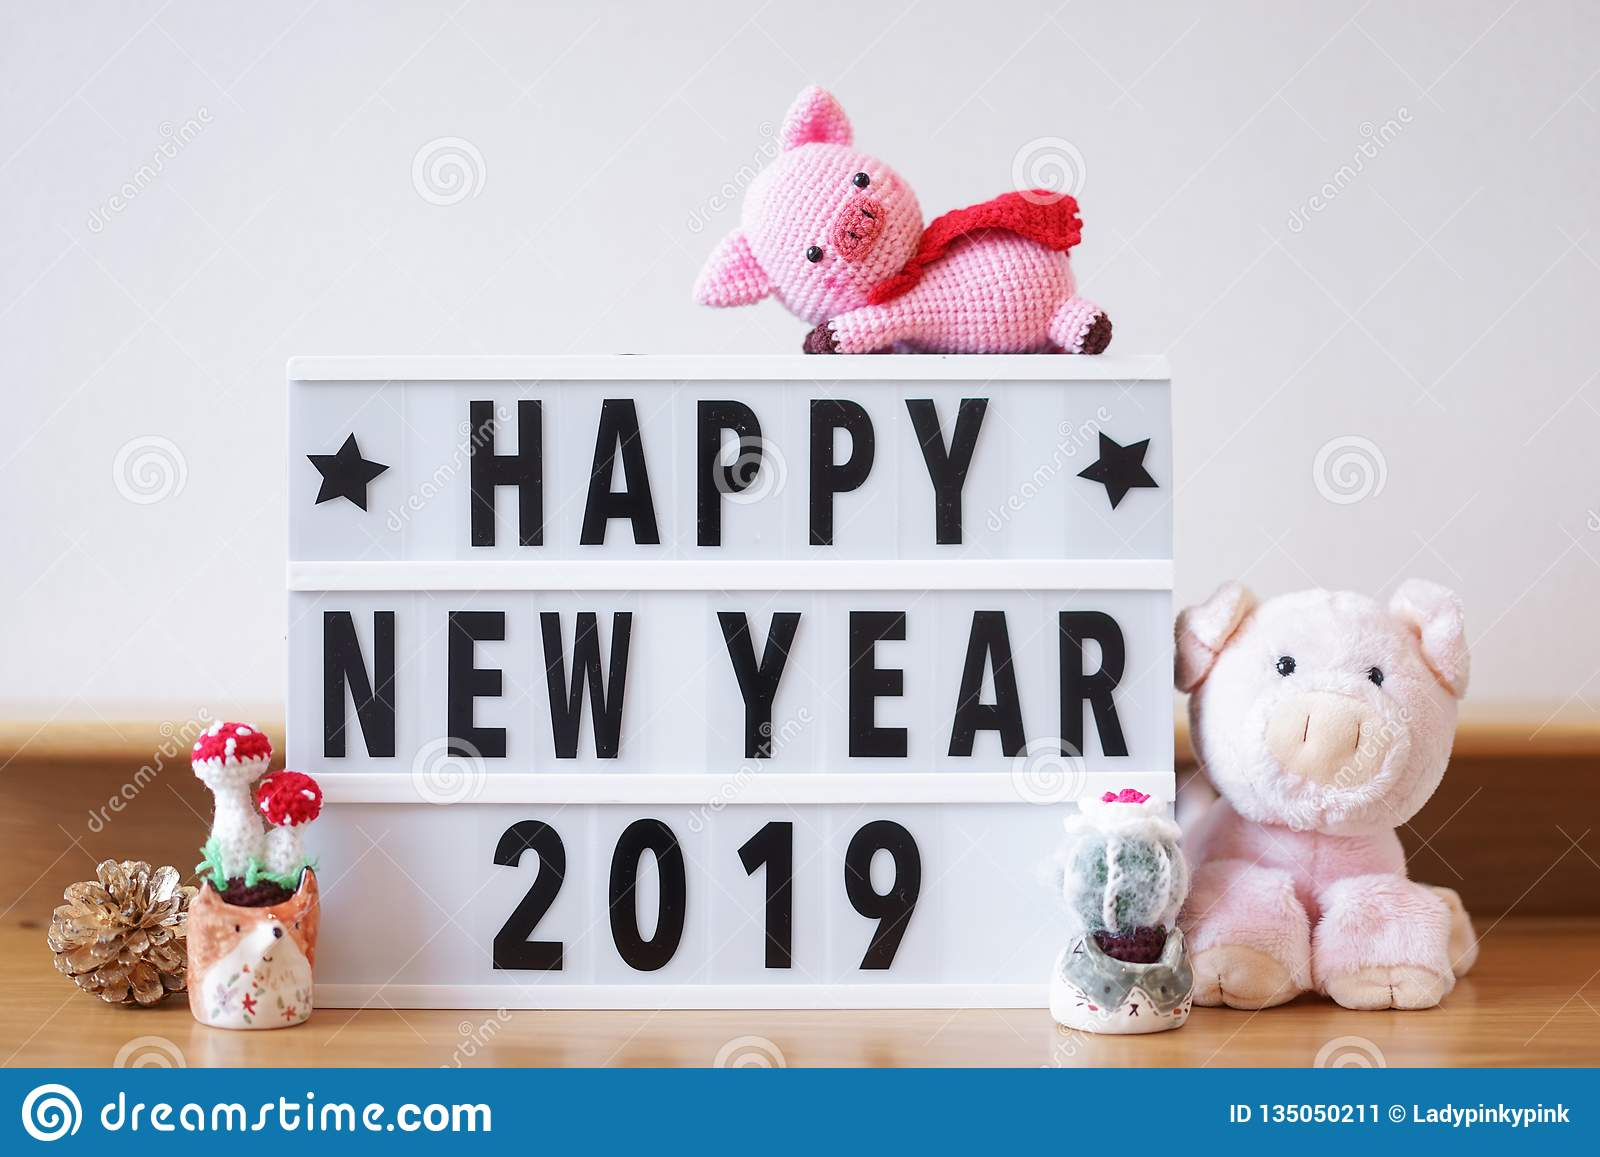 Happy New Year 2019. According to the Chinese animal zodiac, 2019 is a pig year. Copy space on the right to write personal